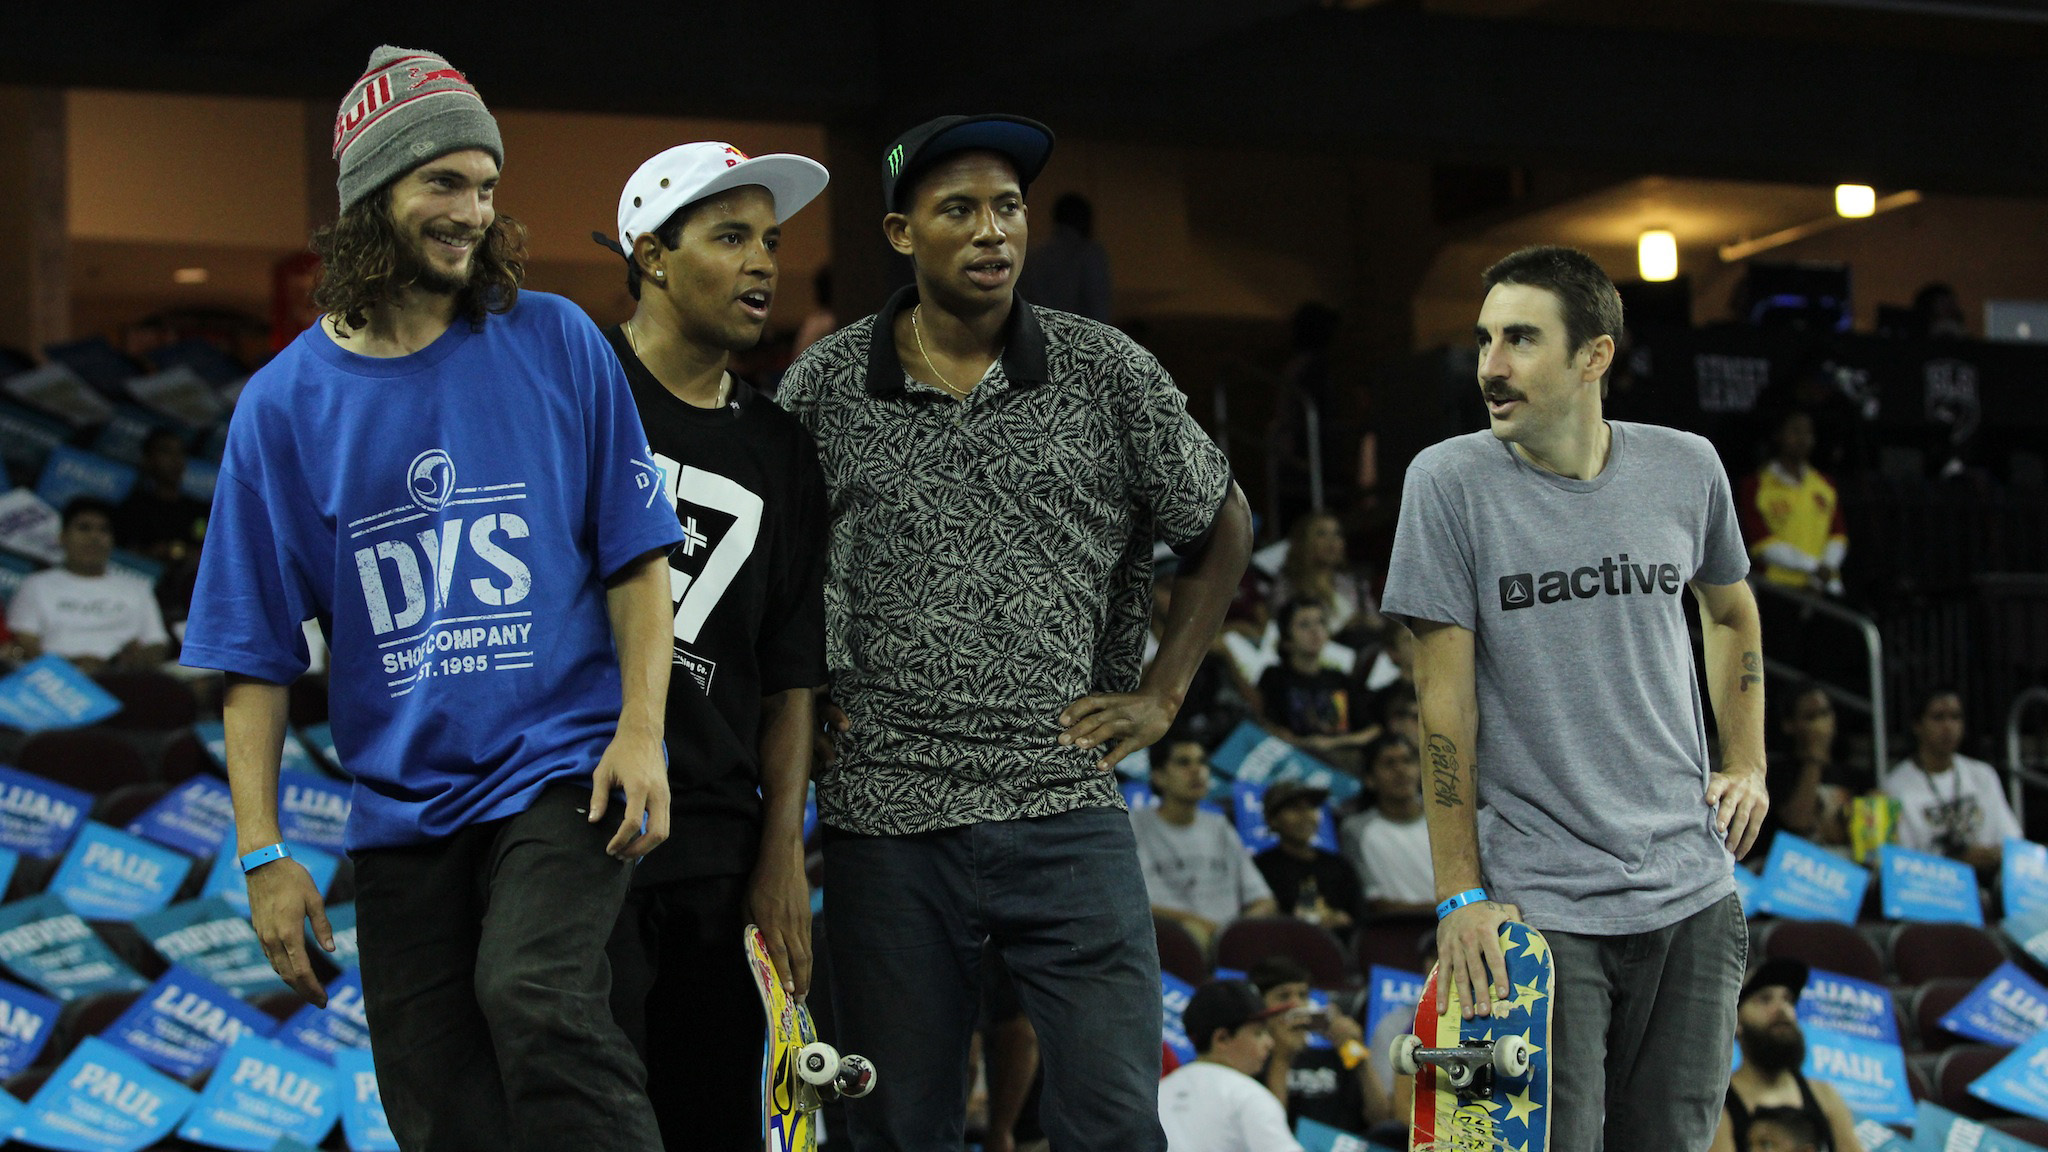 2014 Street League stop two -- USC